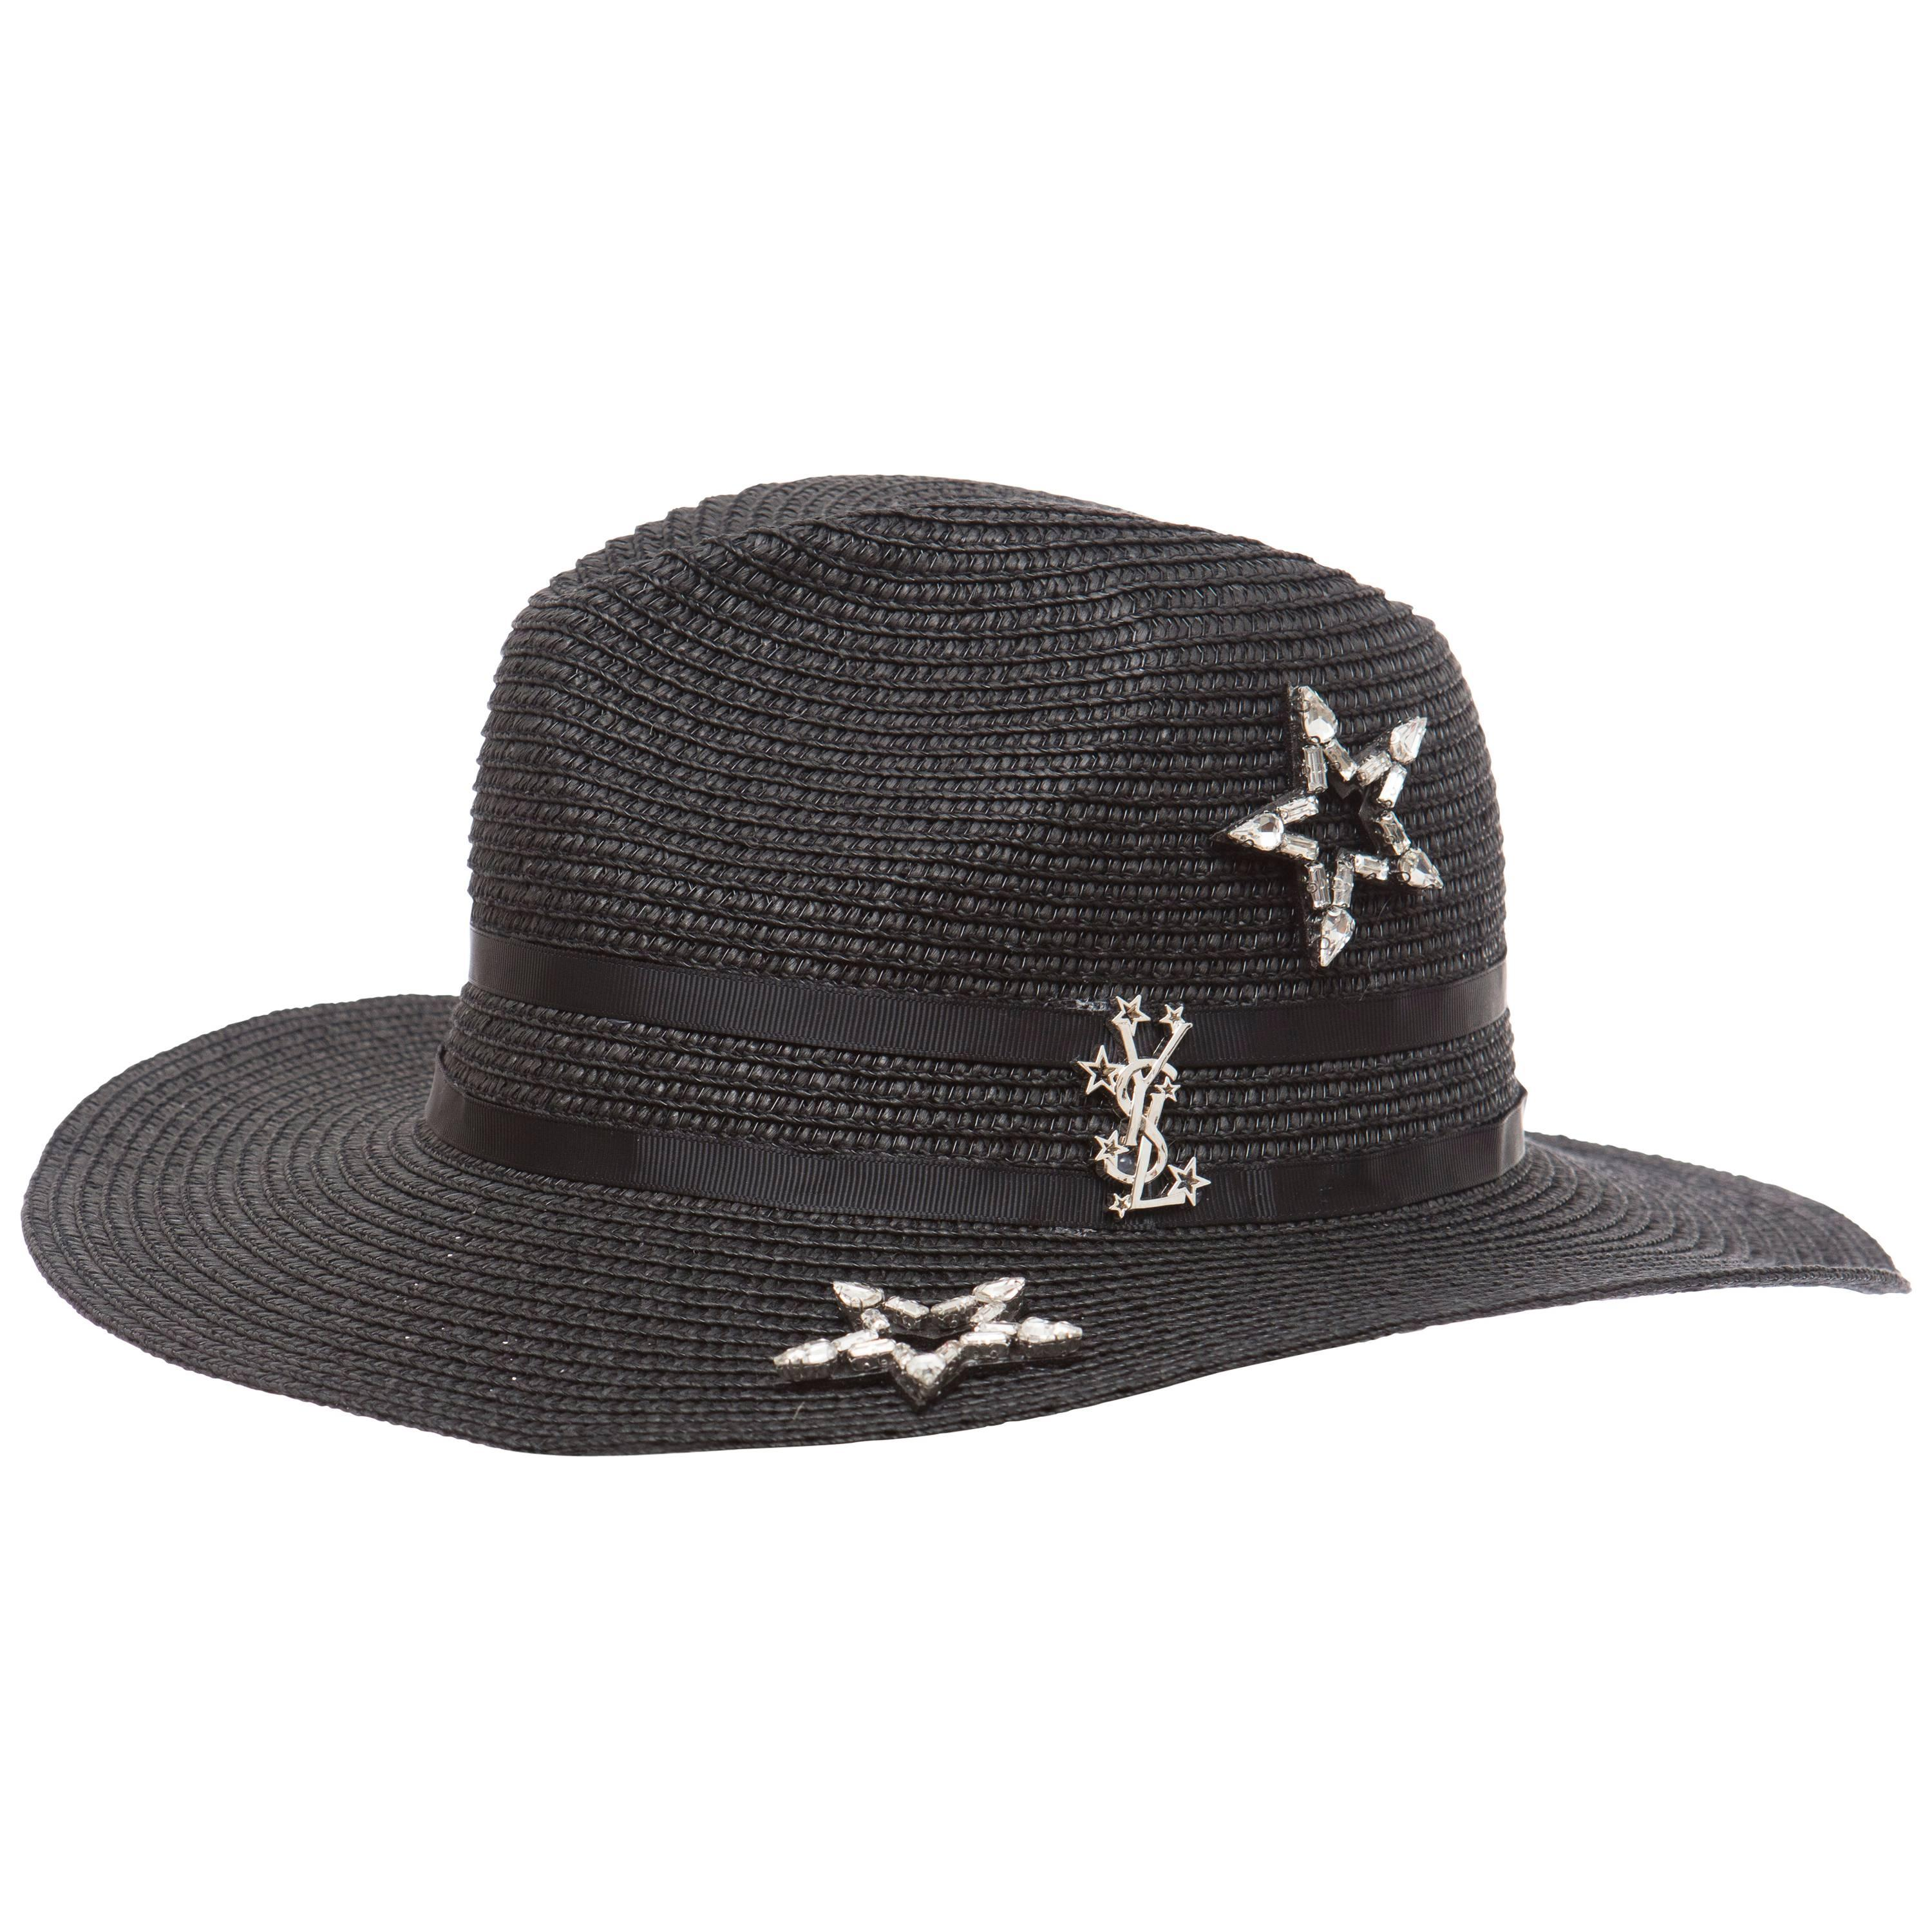 b3859038a9c Yves Saint Laurent Black Straw Hat With Crystal Stars And Black Grosgrain  Trim at 1stdibs